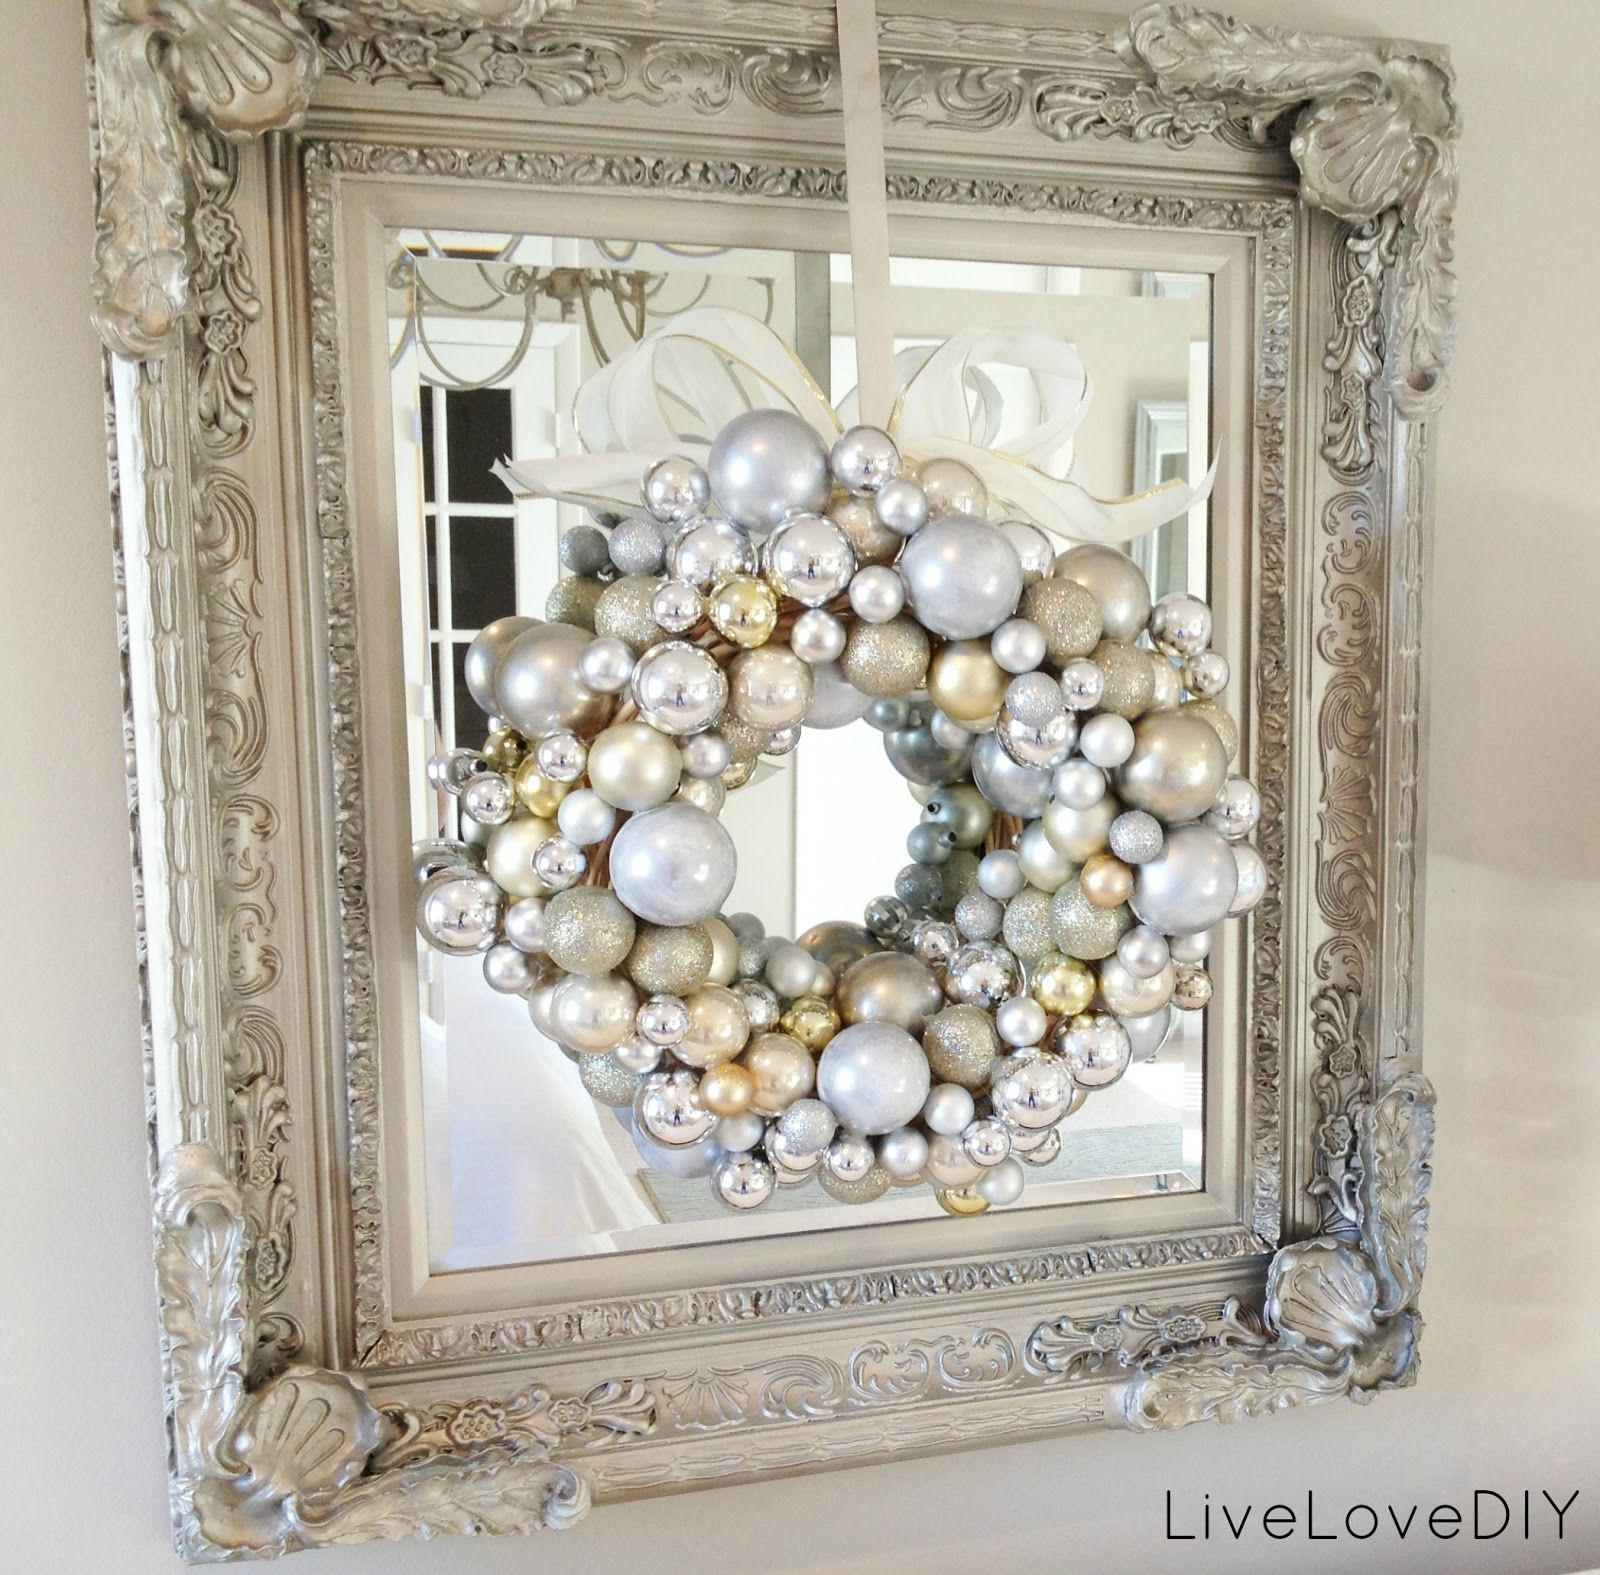 Silver and white christmas table decorations - Decoration Appealing White And Silver Modern Wreath At Great White Mirror With Antique Of Frames Hanging On White Walls Color For Interior Christmas